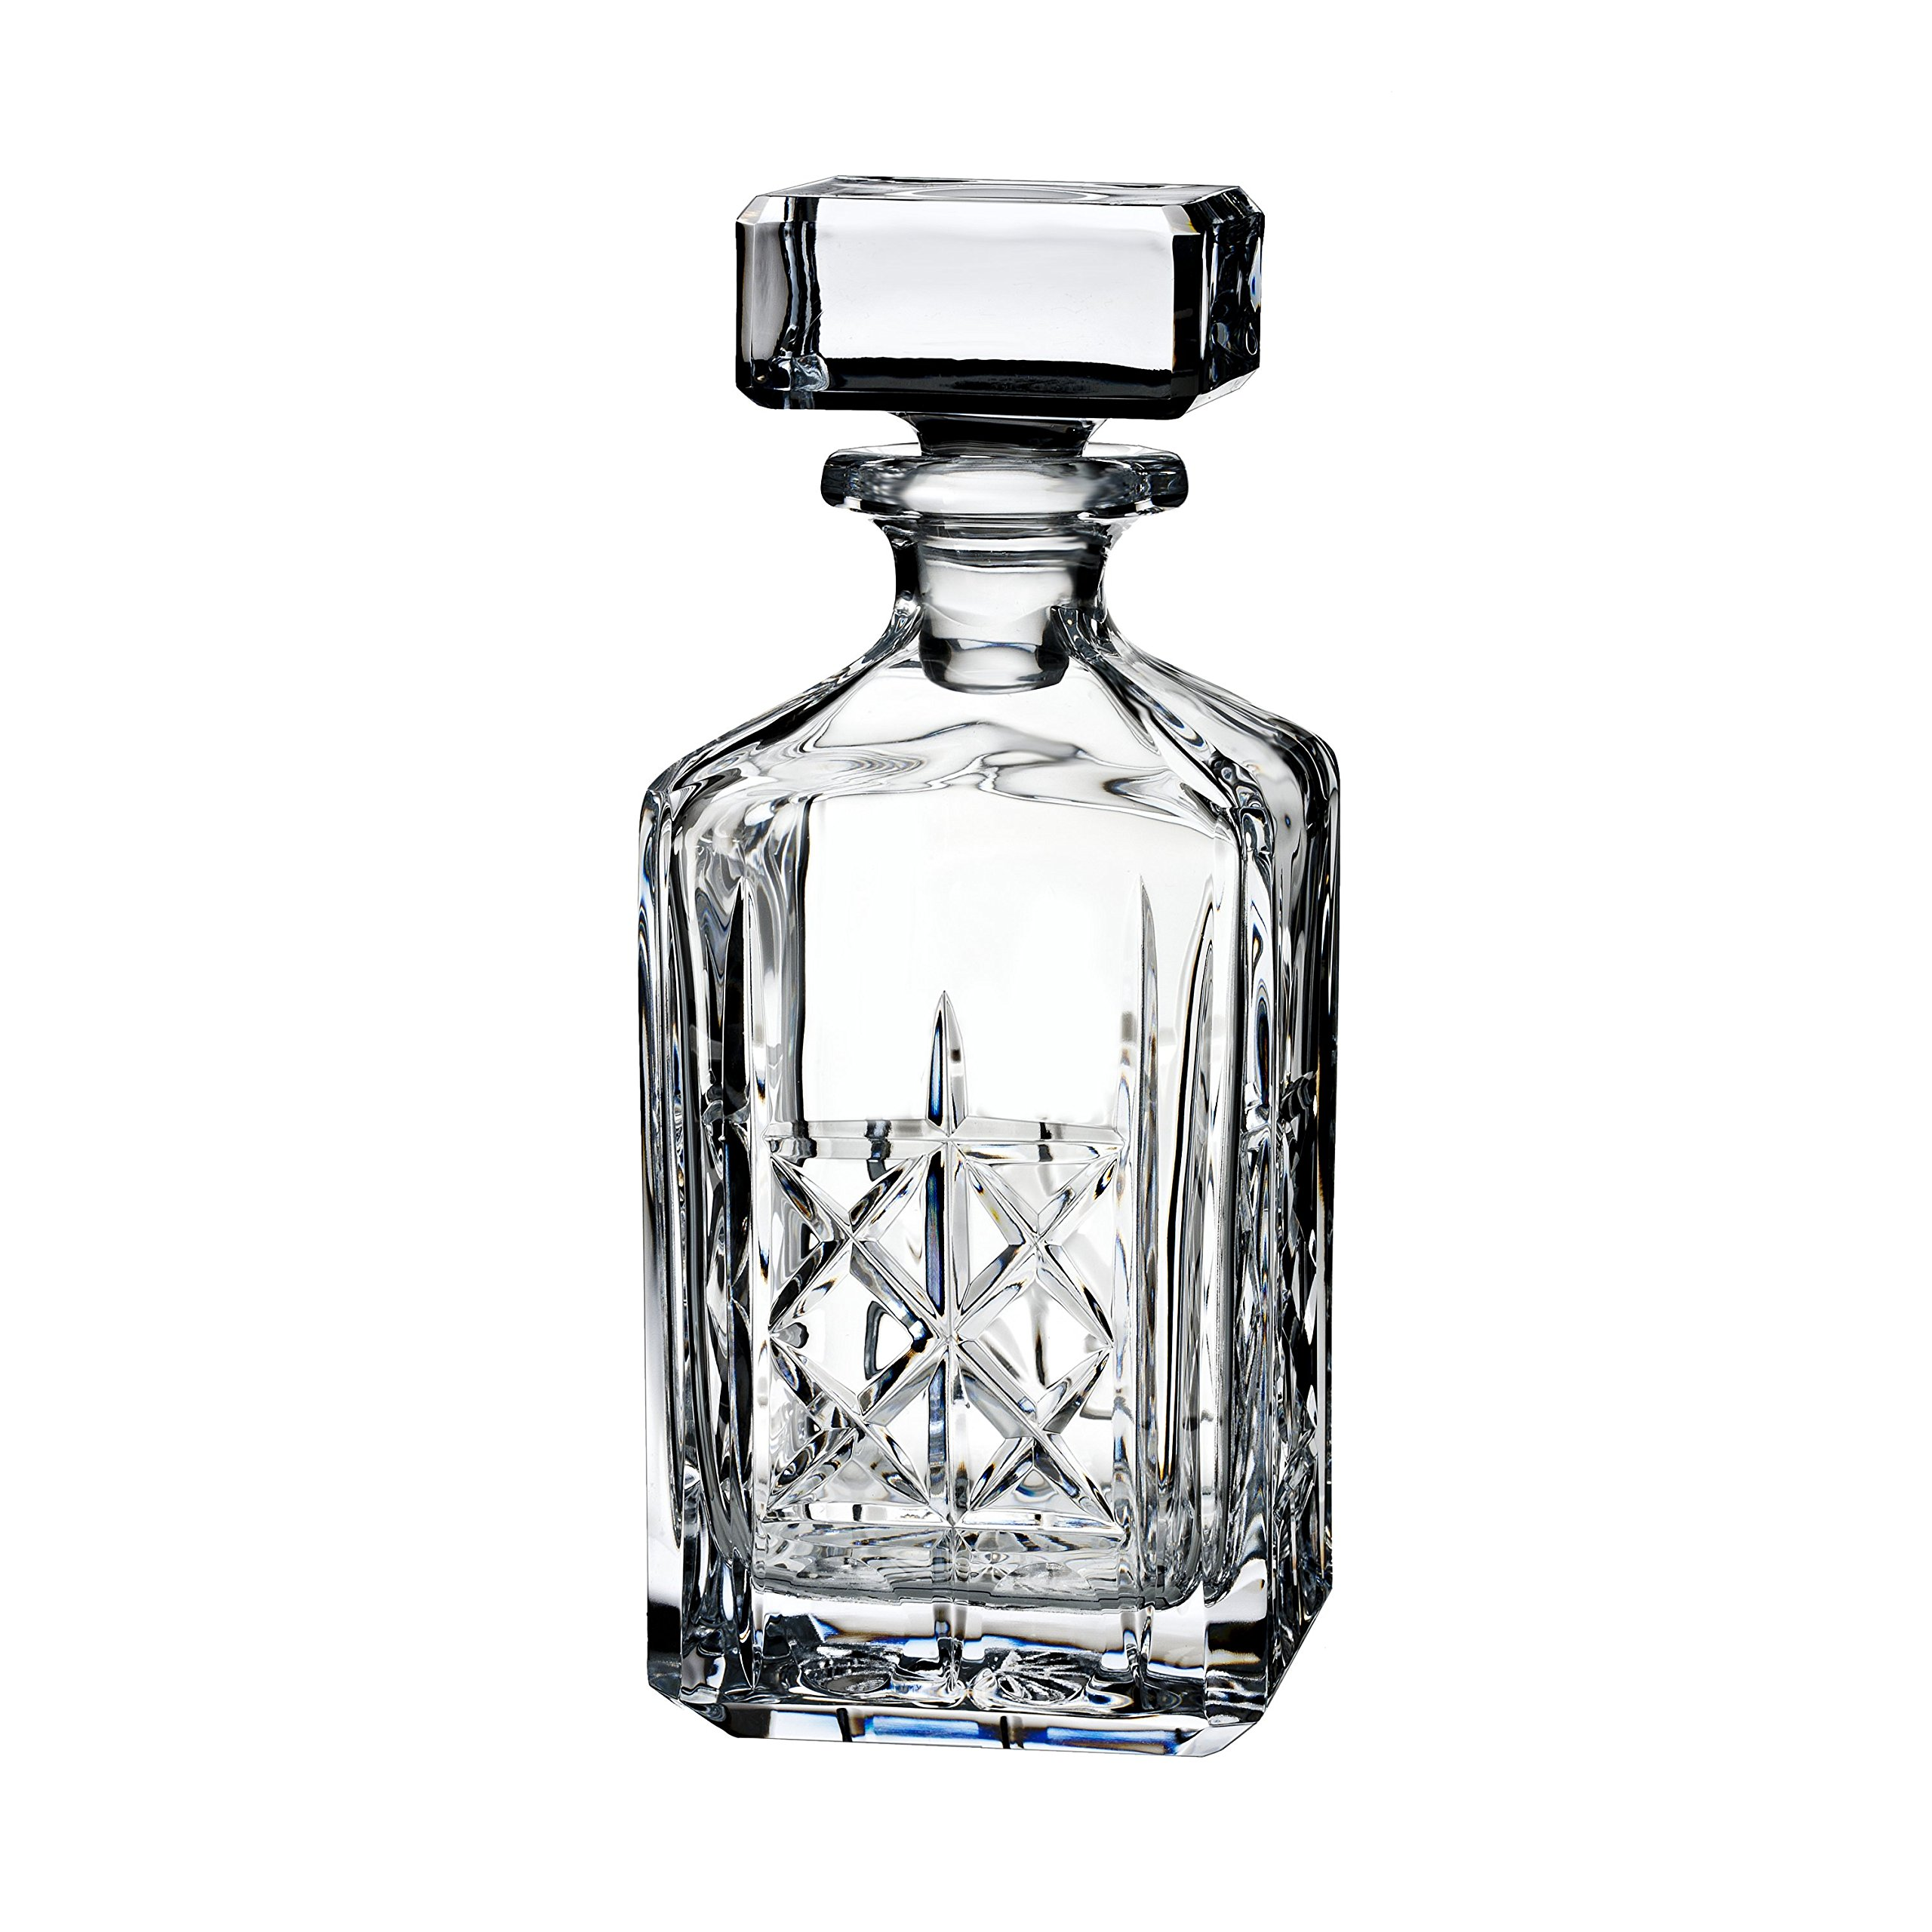 BRADY DECANTER 32 OZ